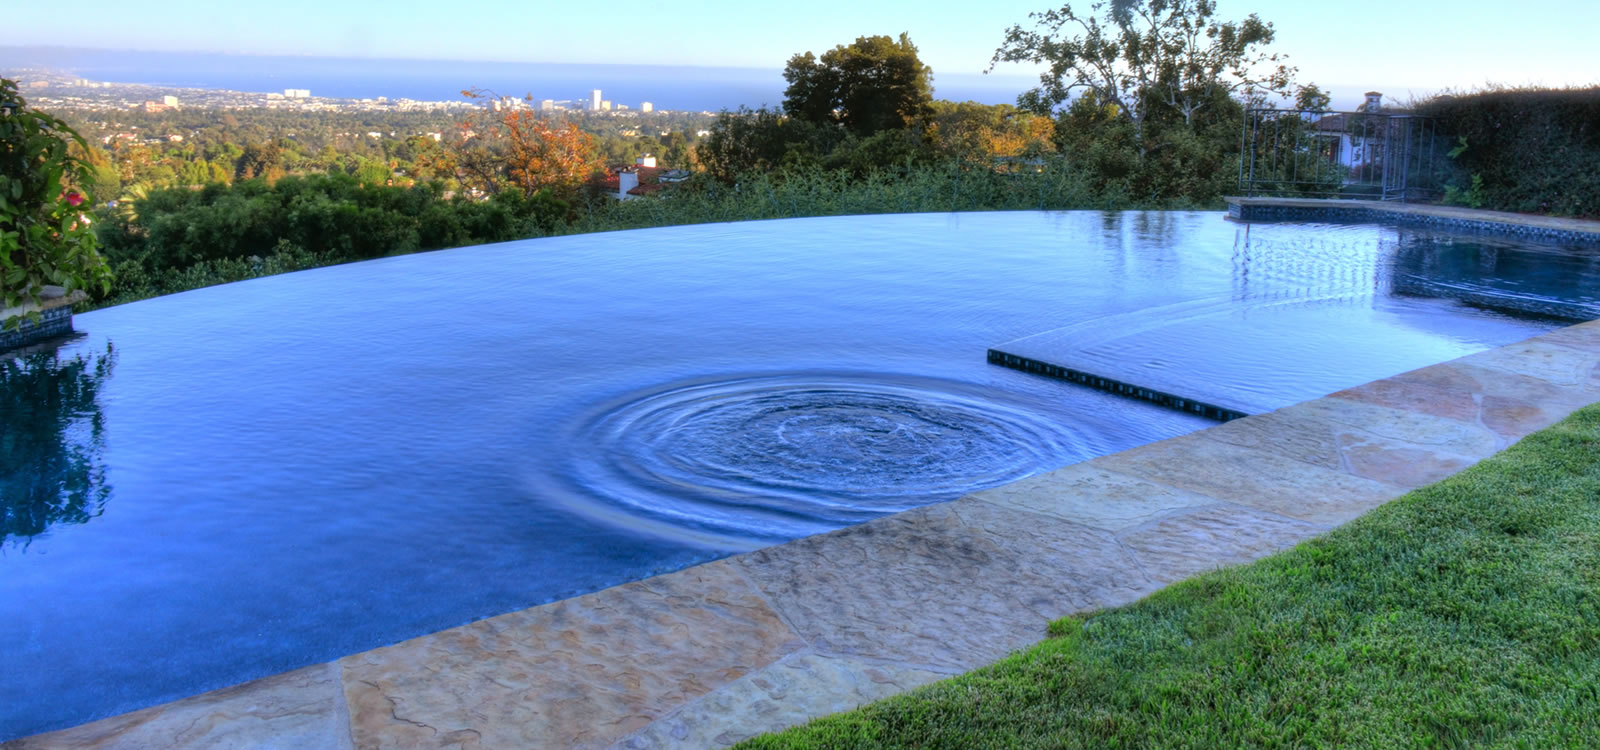 Pacific palisades vanishing edge pool design by john for Pool edges design